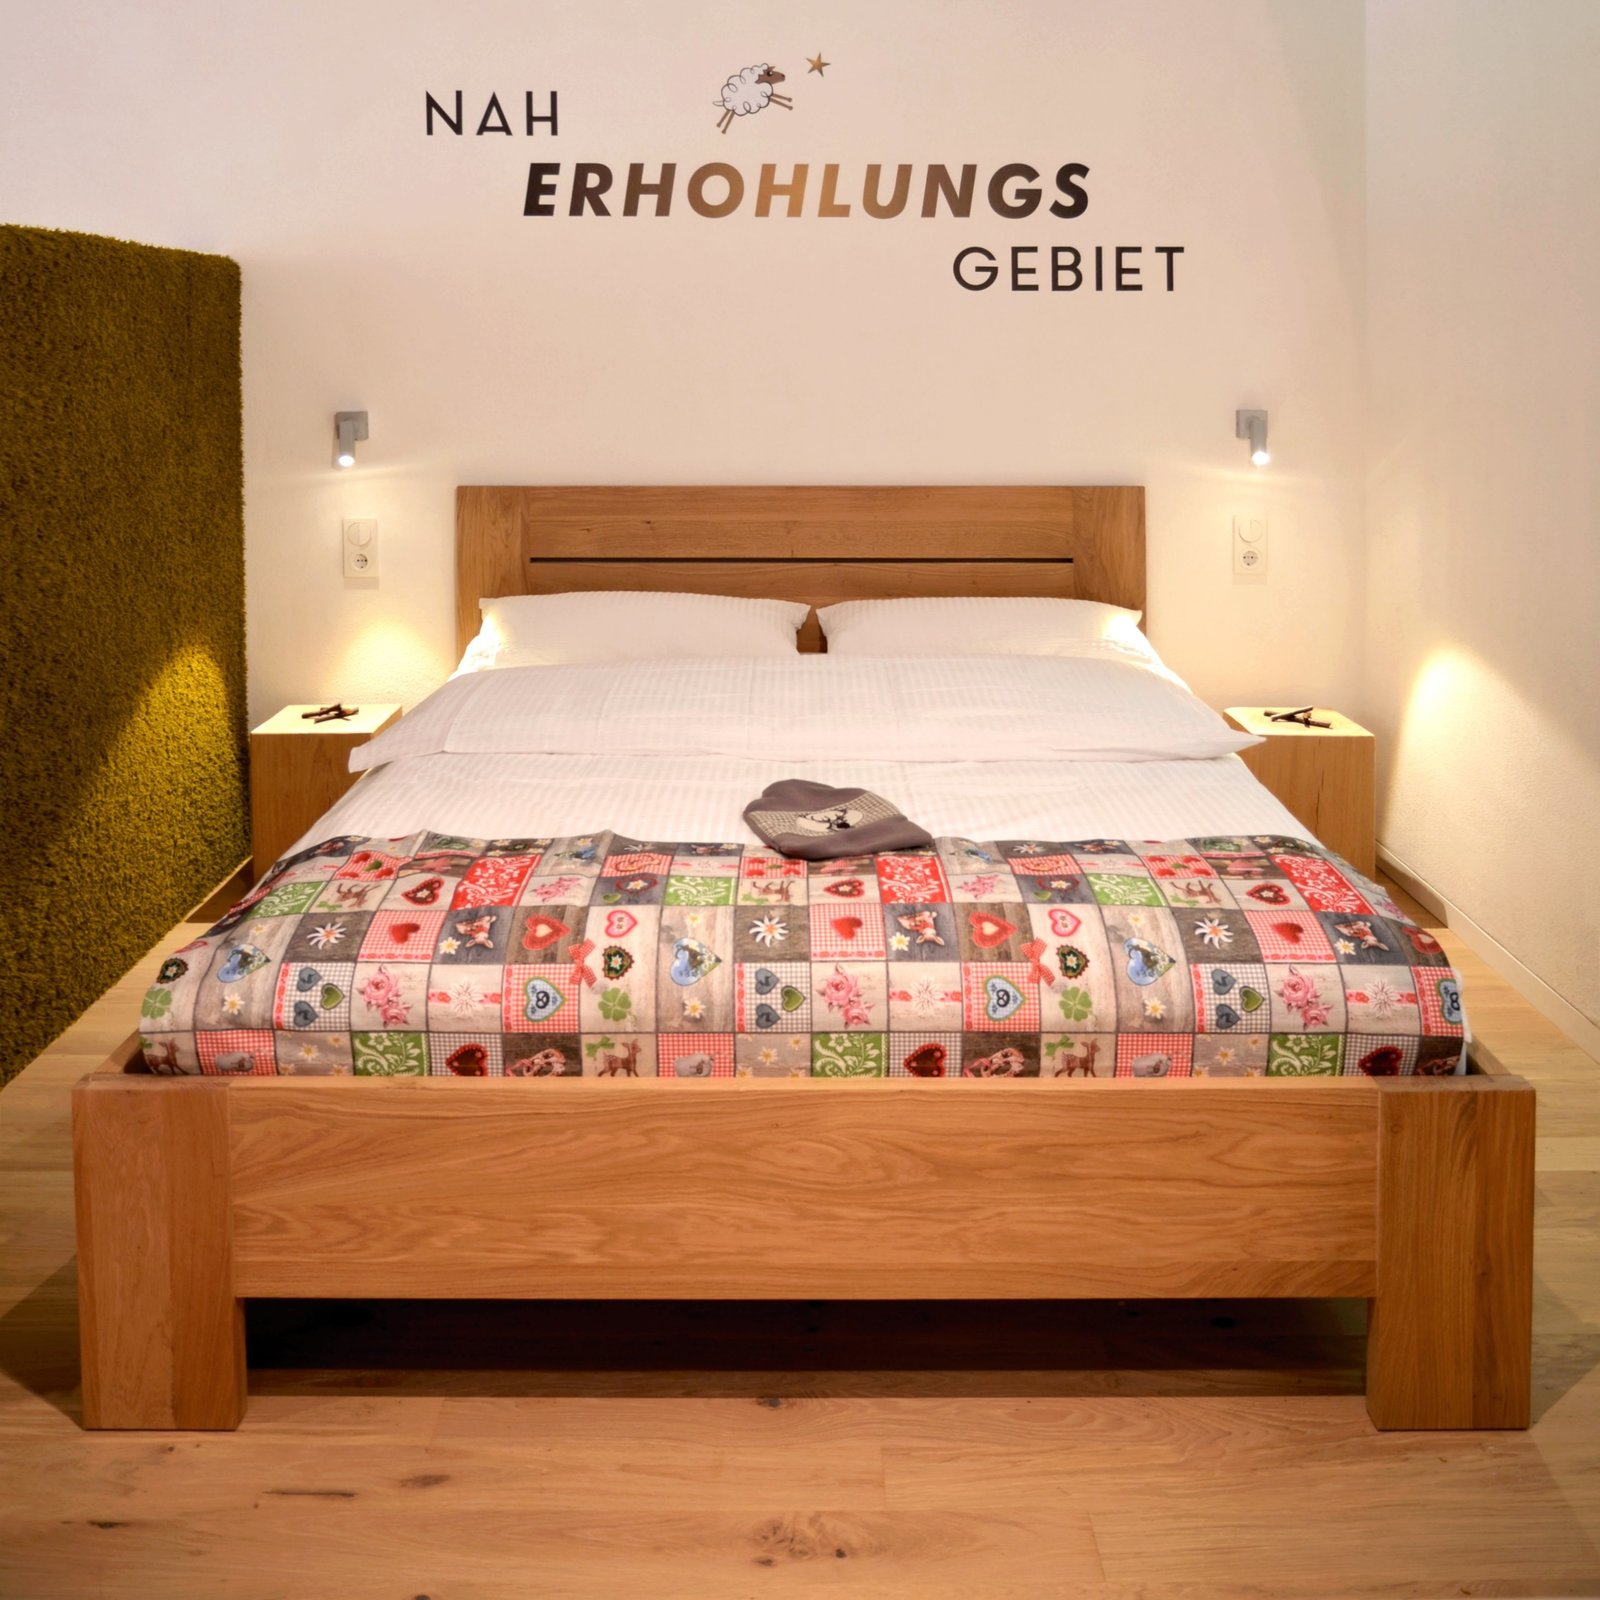 Bedroom, Bed, Wall Lighting, Night Stands, and Light Hardwood Floor  Refugium Betzenstein from Escape to a Bio-Passive Vacation Refuge in a Bavarian Nature Park